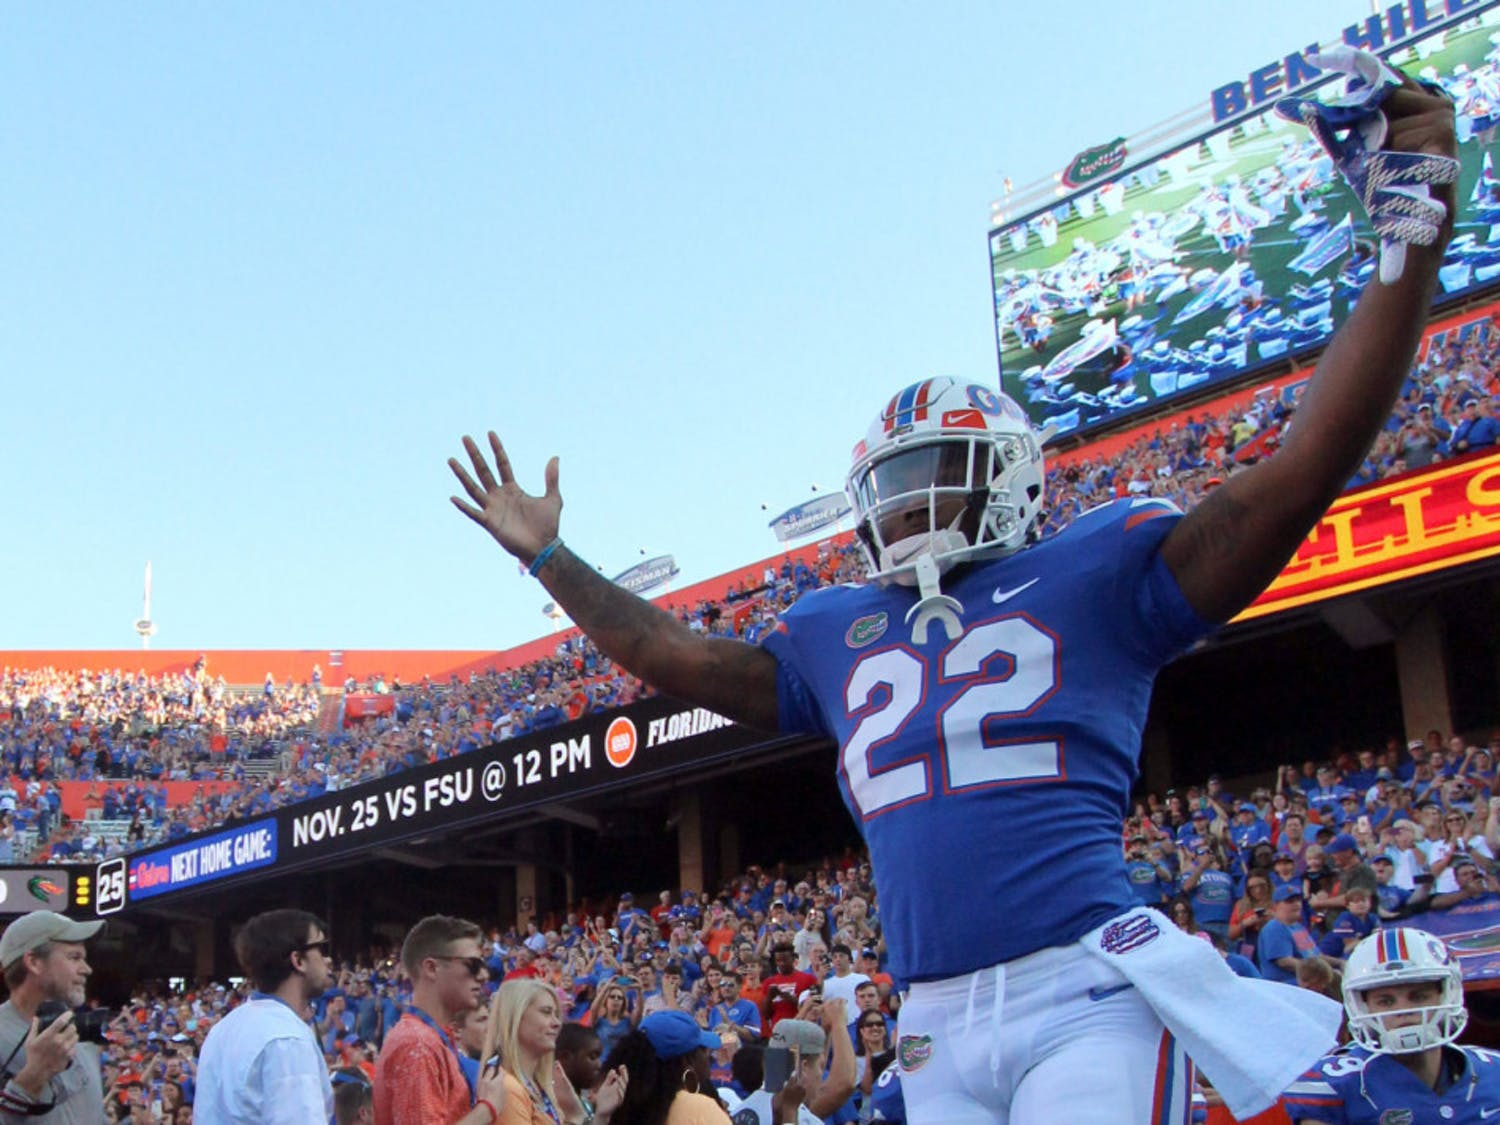 """The Gators haven't beaten the Seminoles since 2012, meaning both last year's and this year's seniors never did.""""We just want to send those guys out with a good win,"""" sophomore running back Lamical Perine said. """"There's going to be a whole lot of fans coming out for that game. It's going to be a nice game."""""""